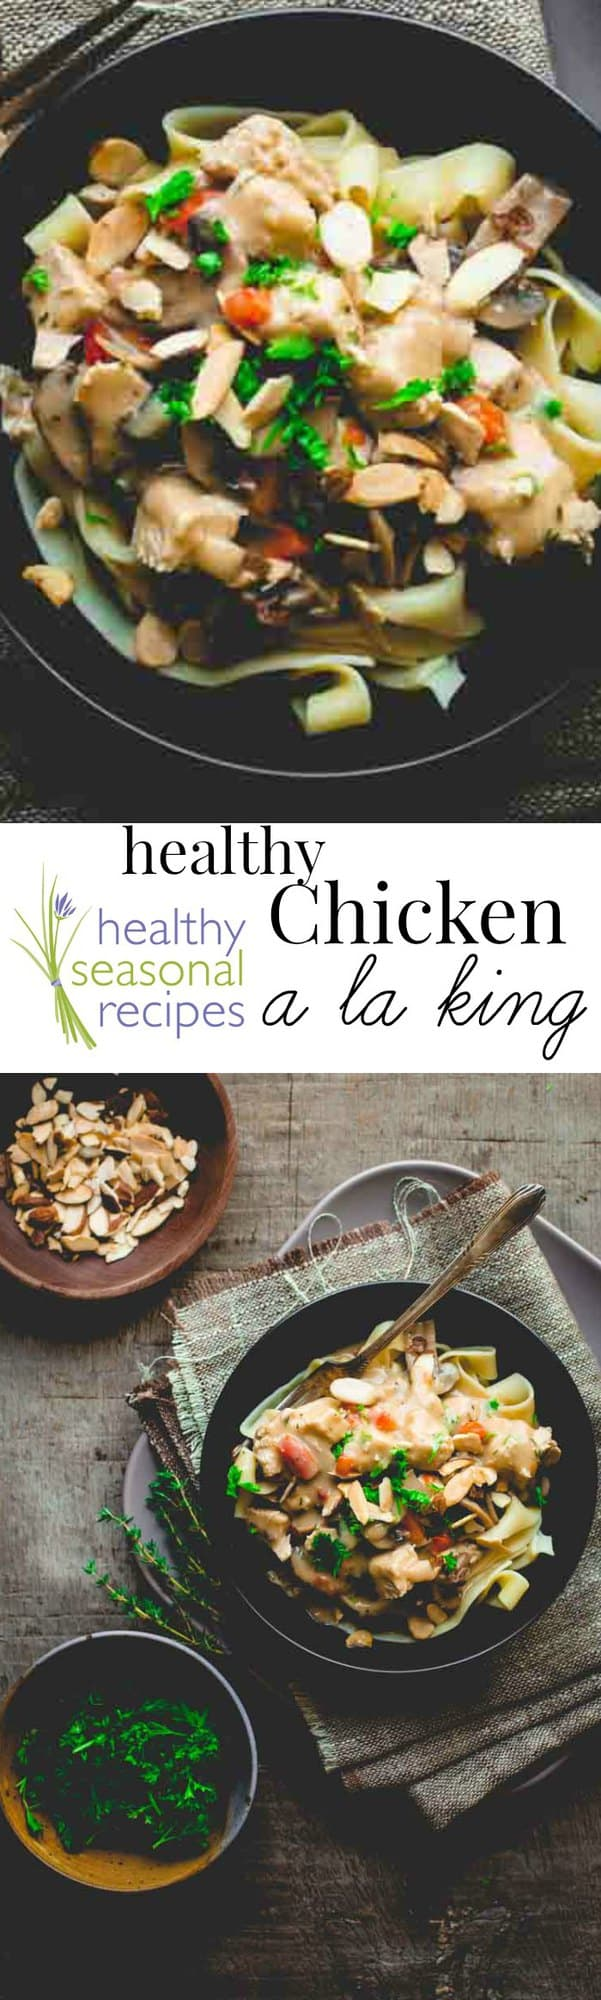 Healthy chicken a la king healthy seasonal recipes forumfinder Gallery